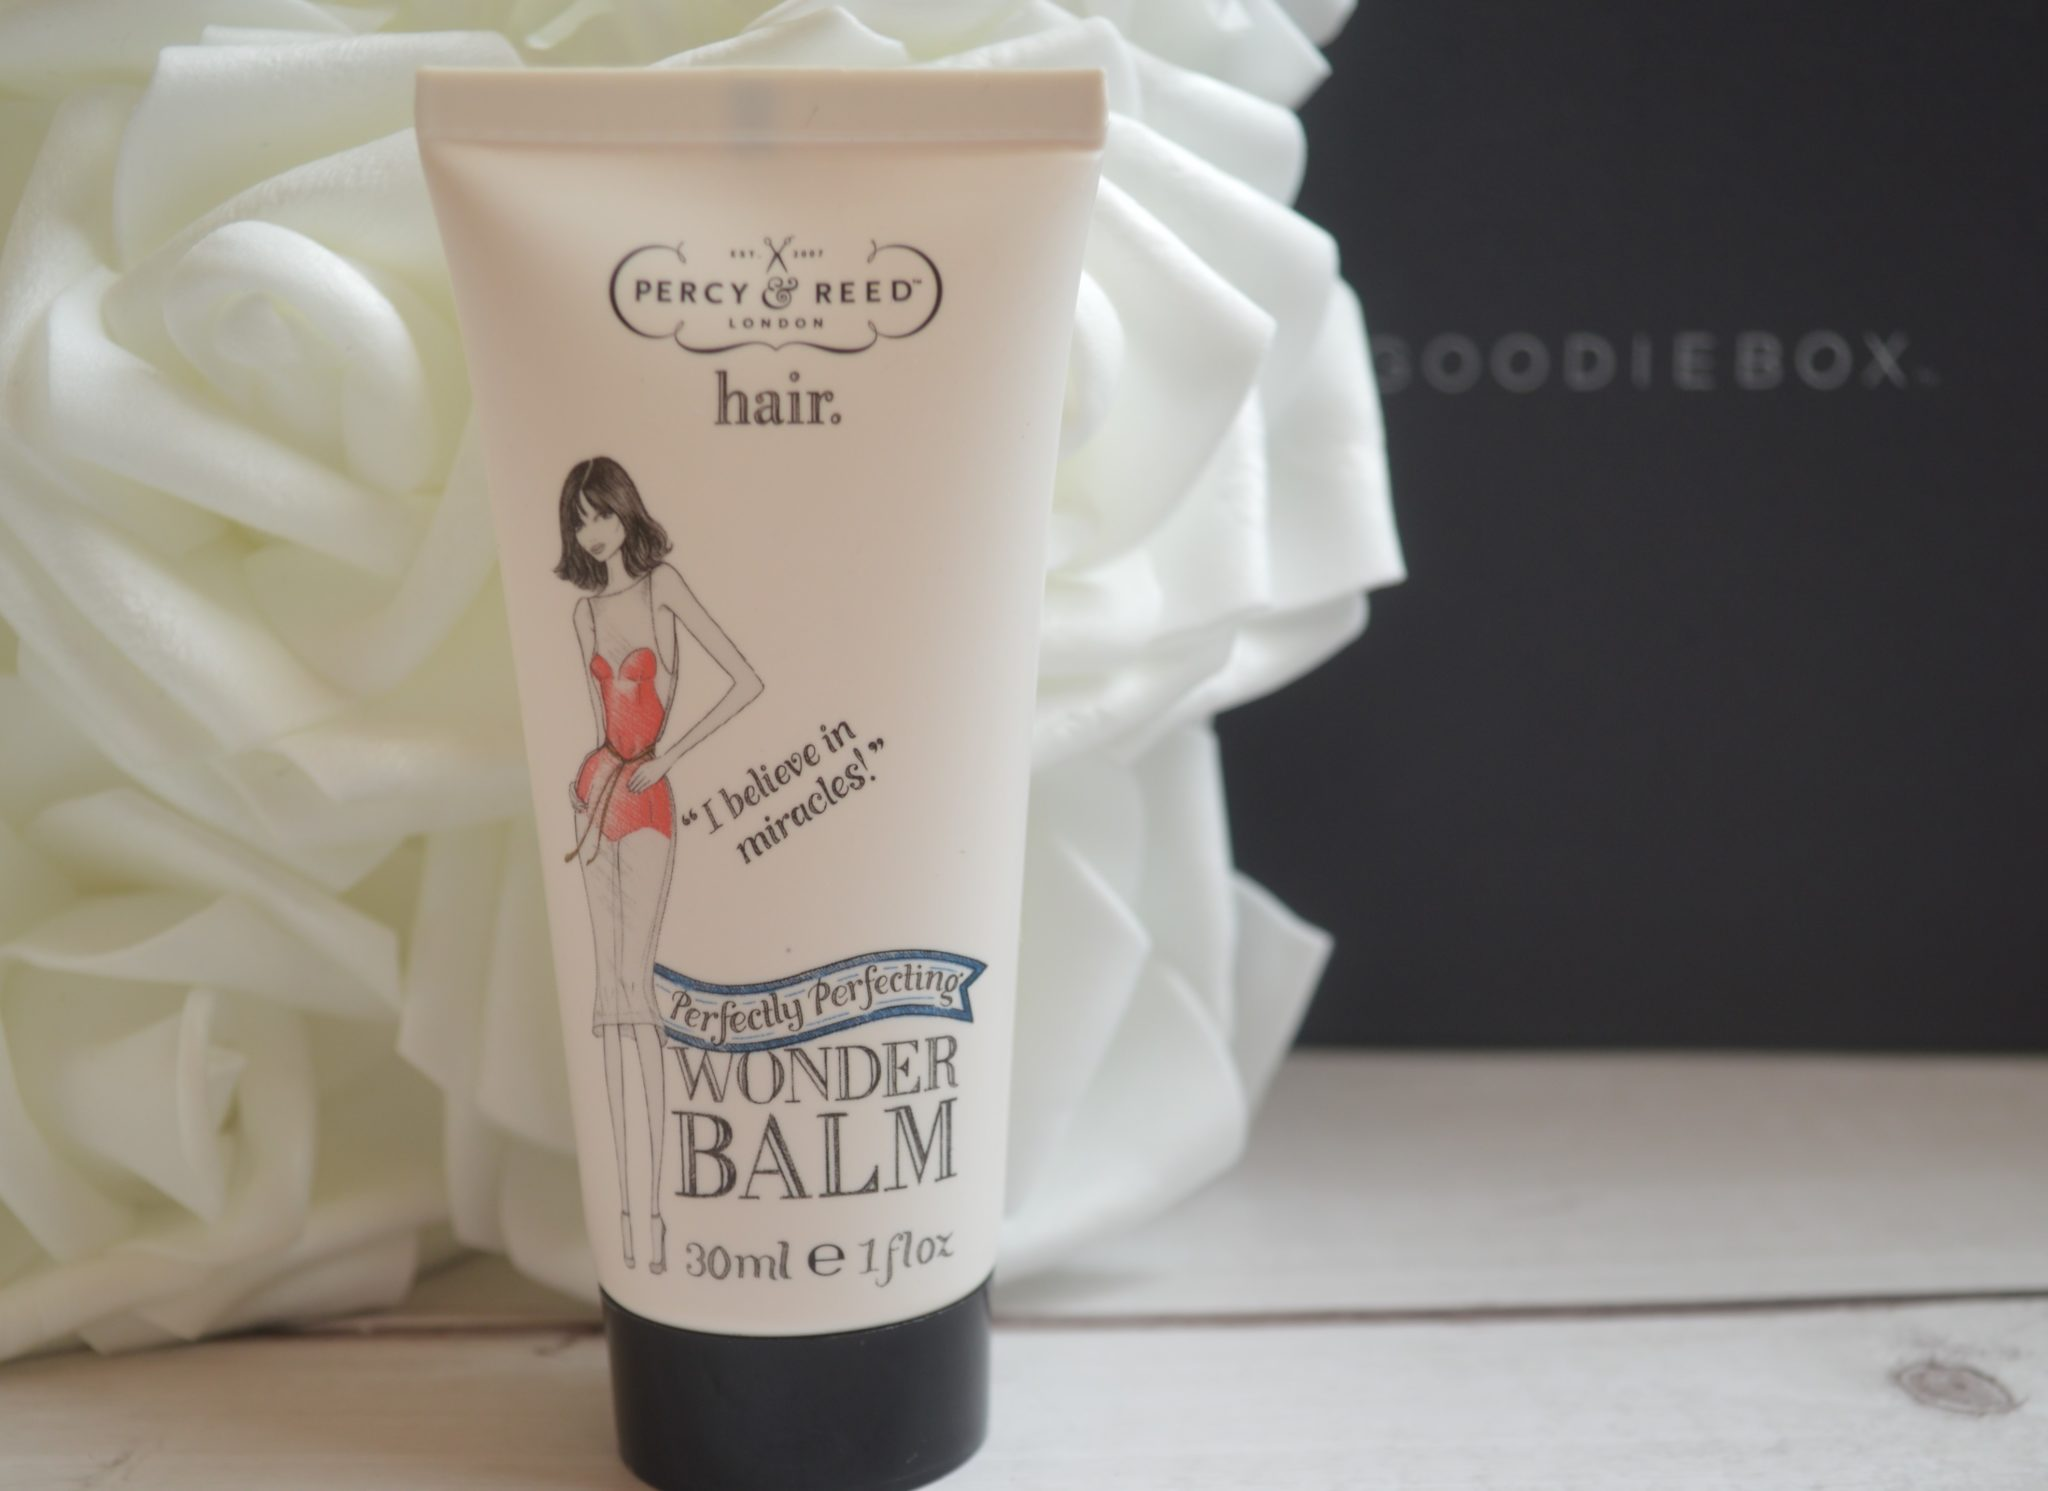 Percy & Reed london wonder balm